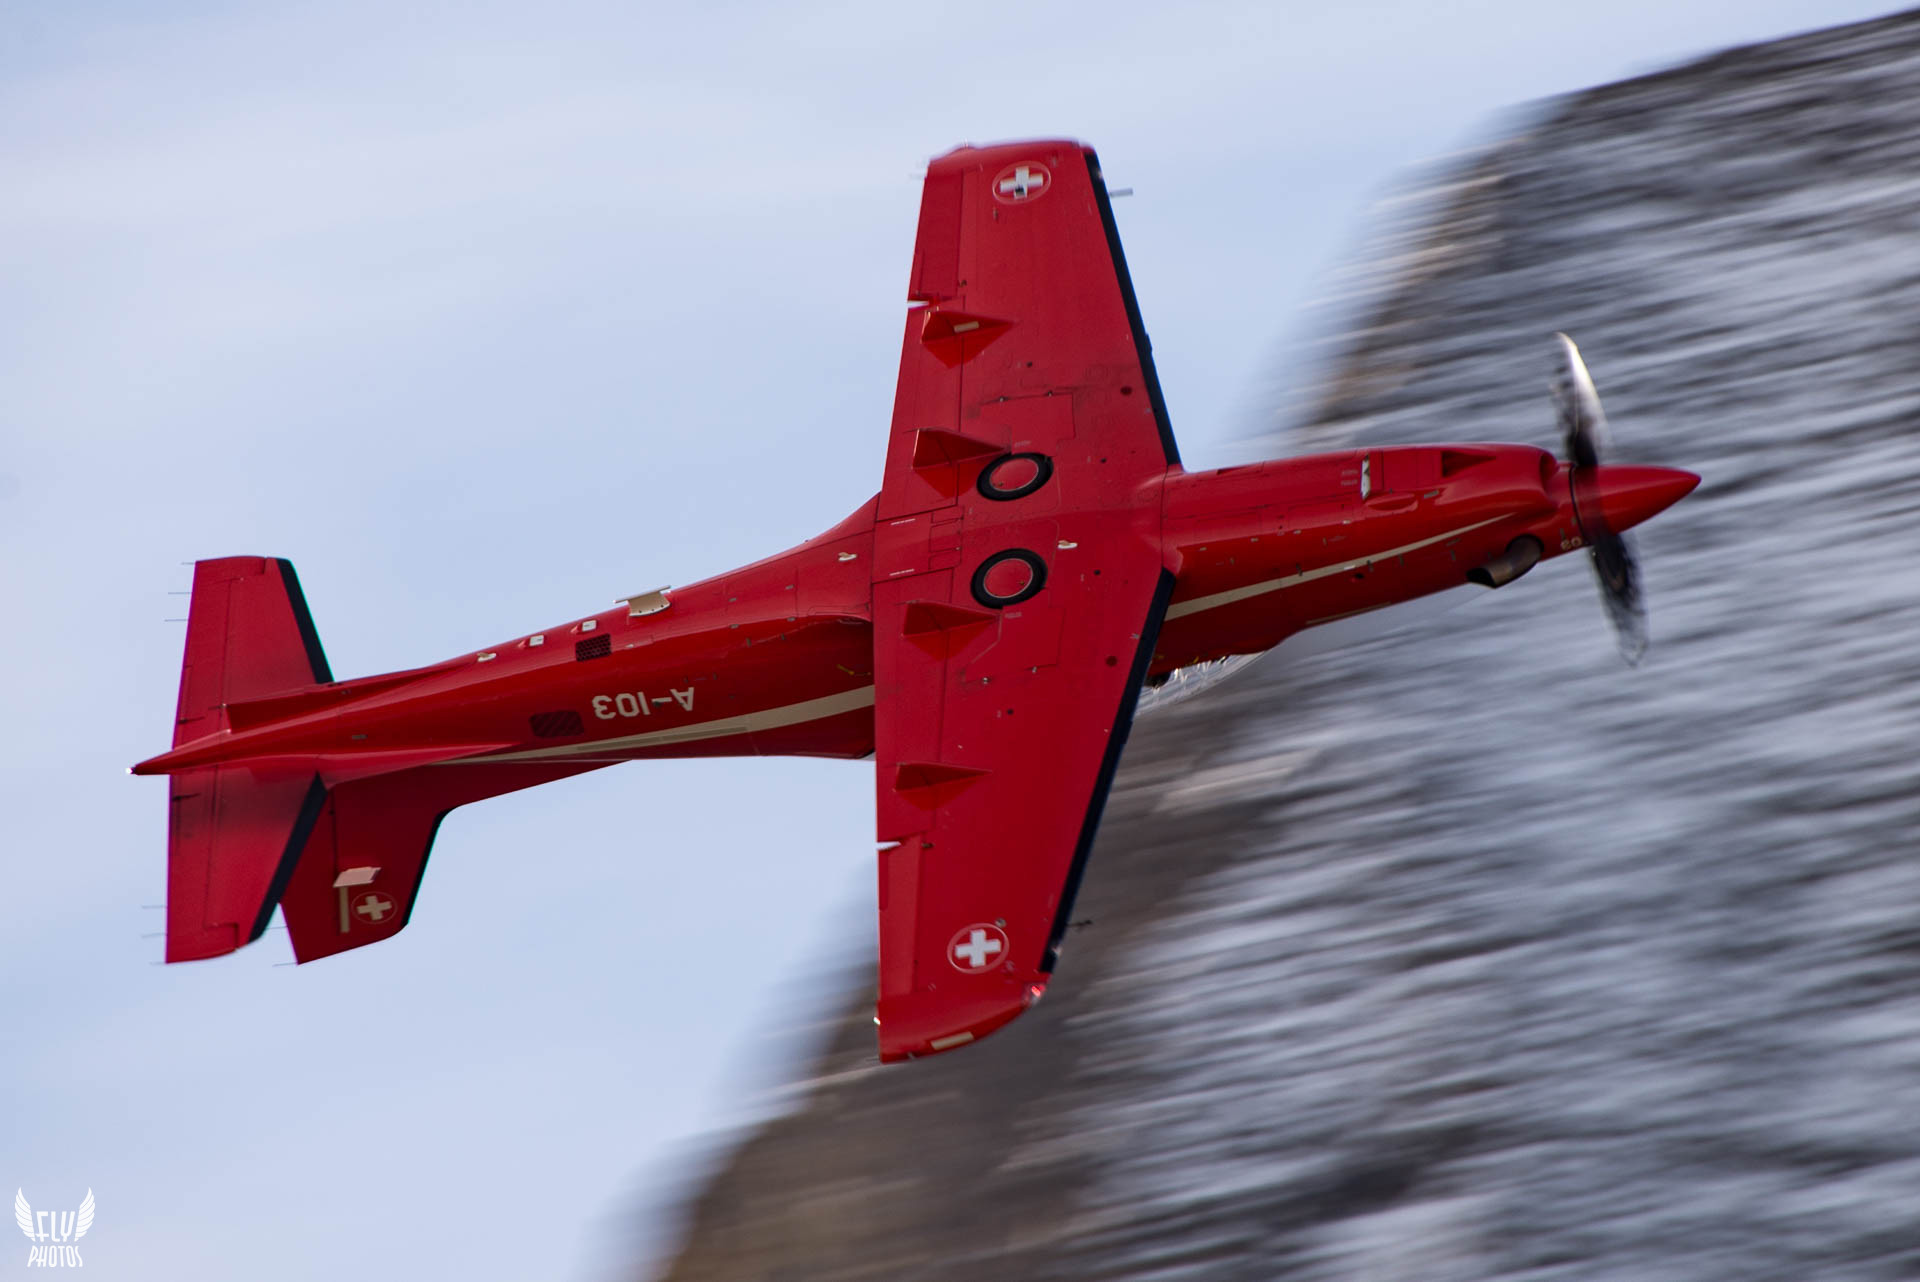 Photo of the day: Red Pilatus is sooo red